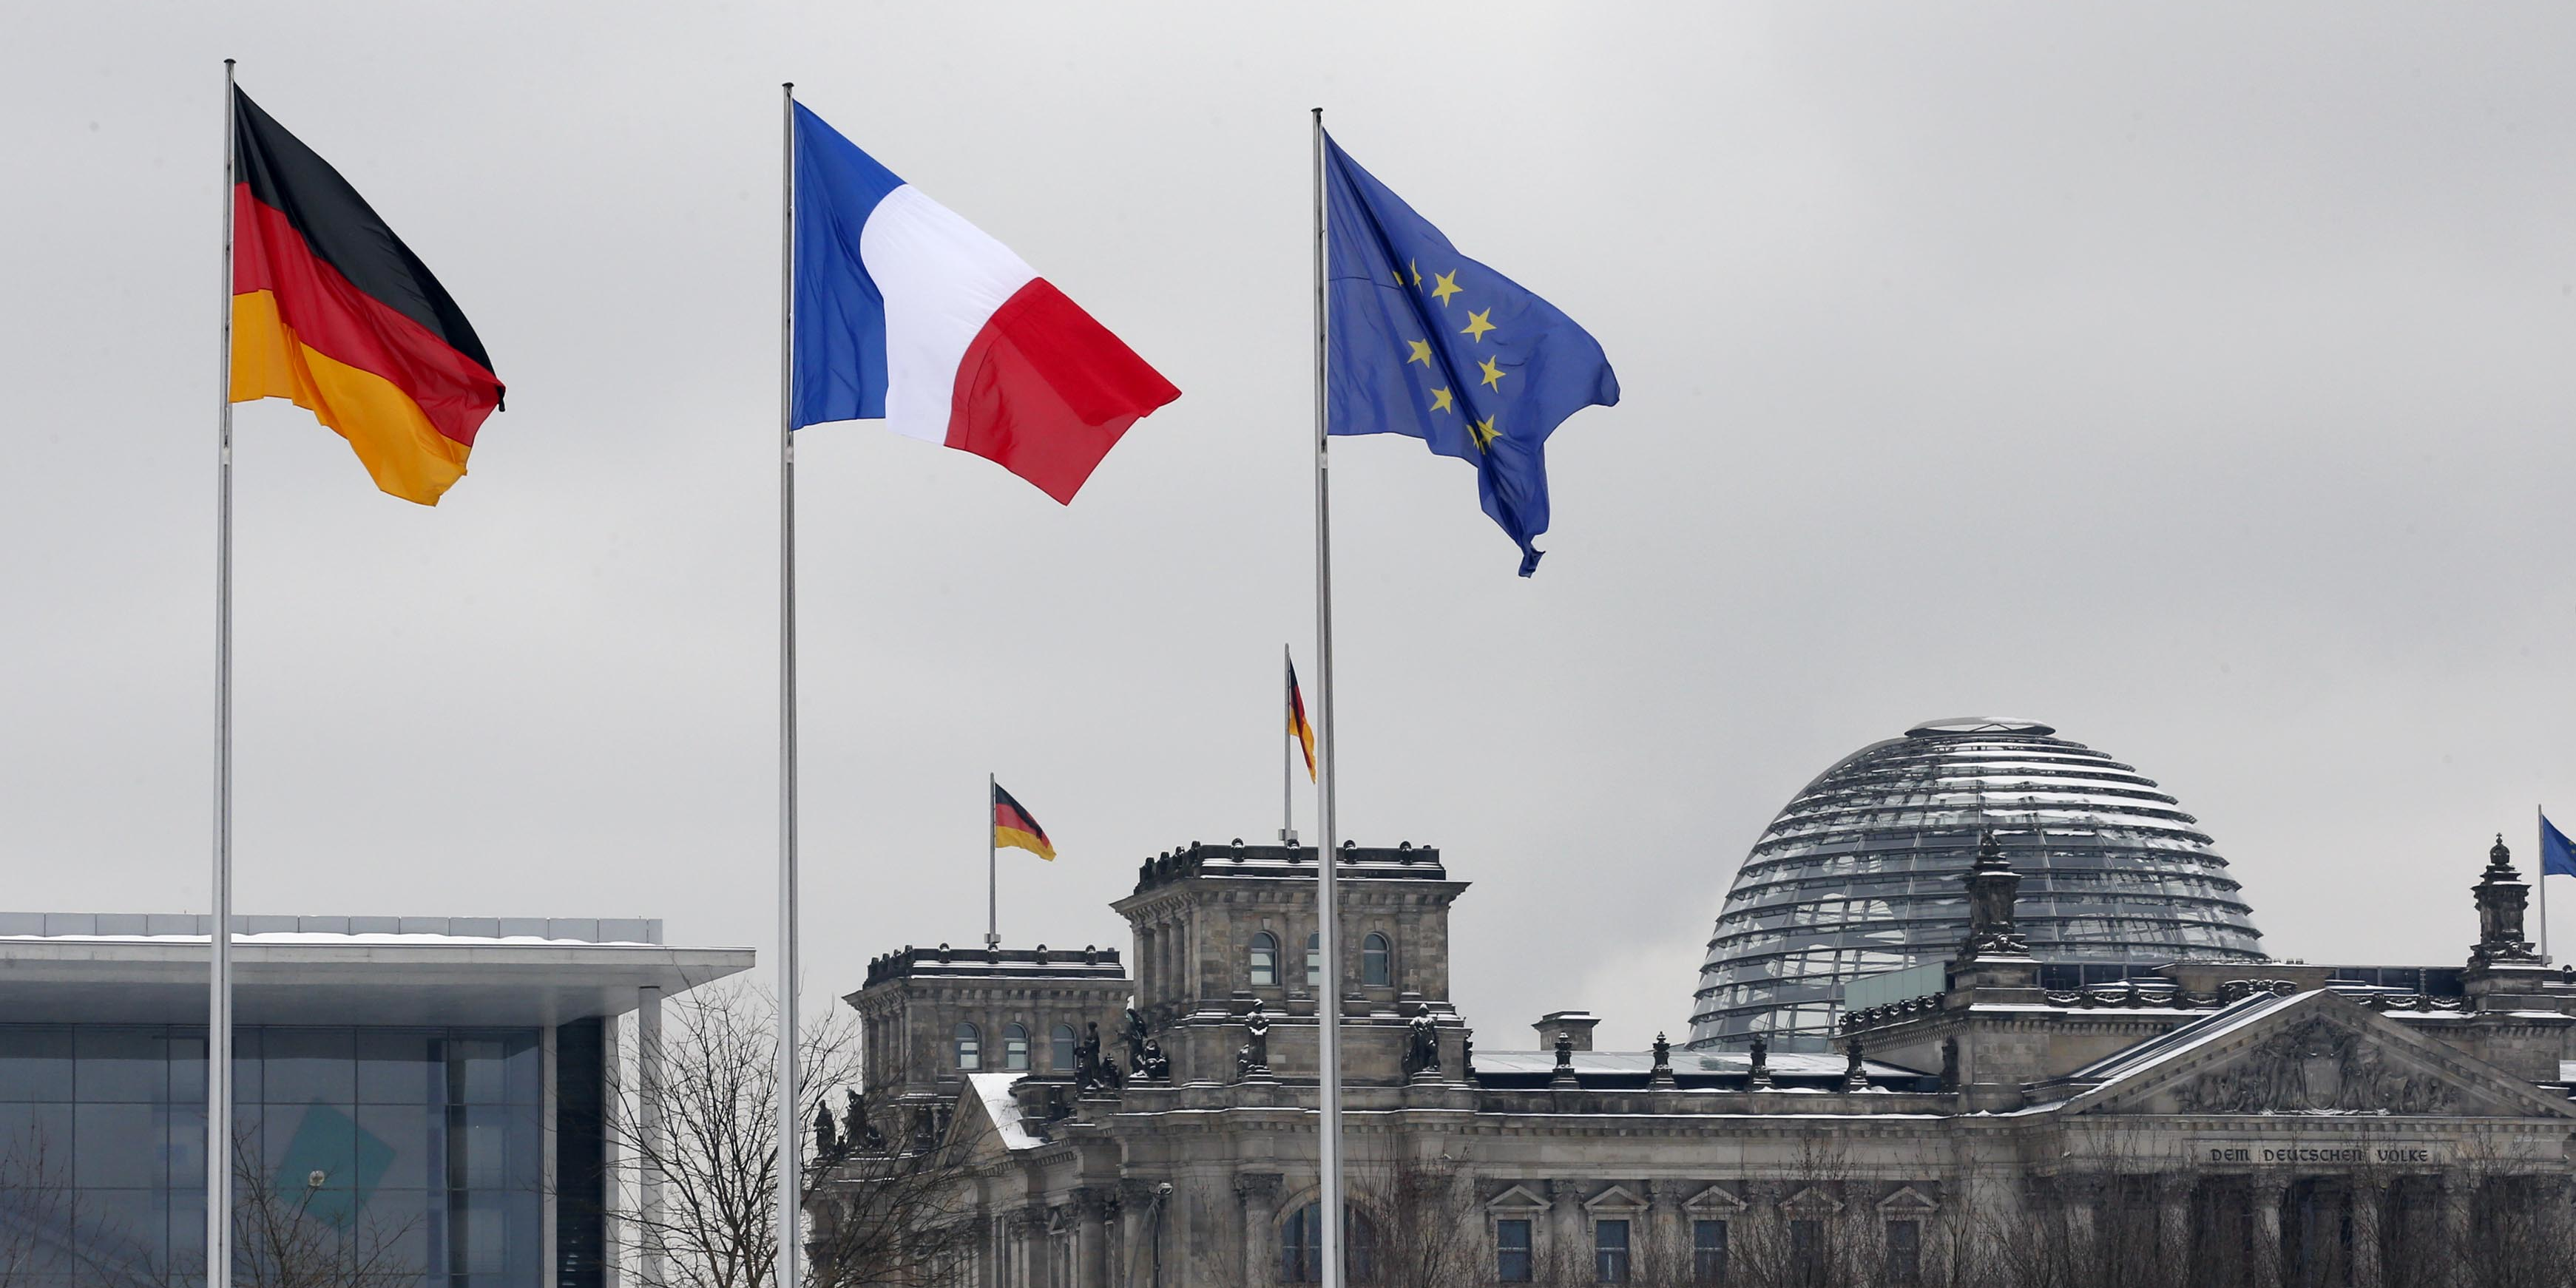 france-allemagne-union-europeenne-europe-drapeaux-flags 20190914112314